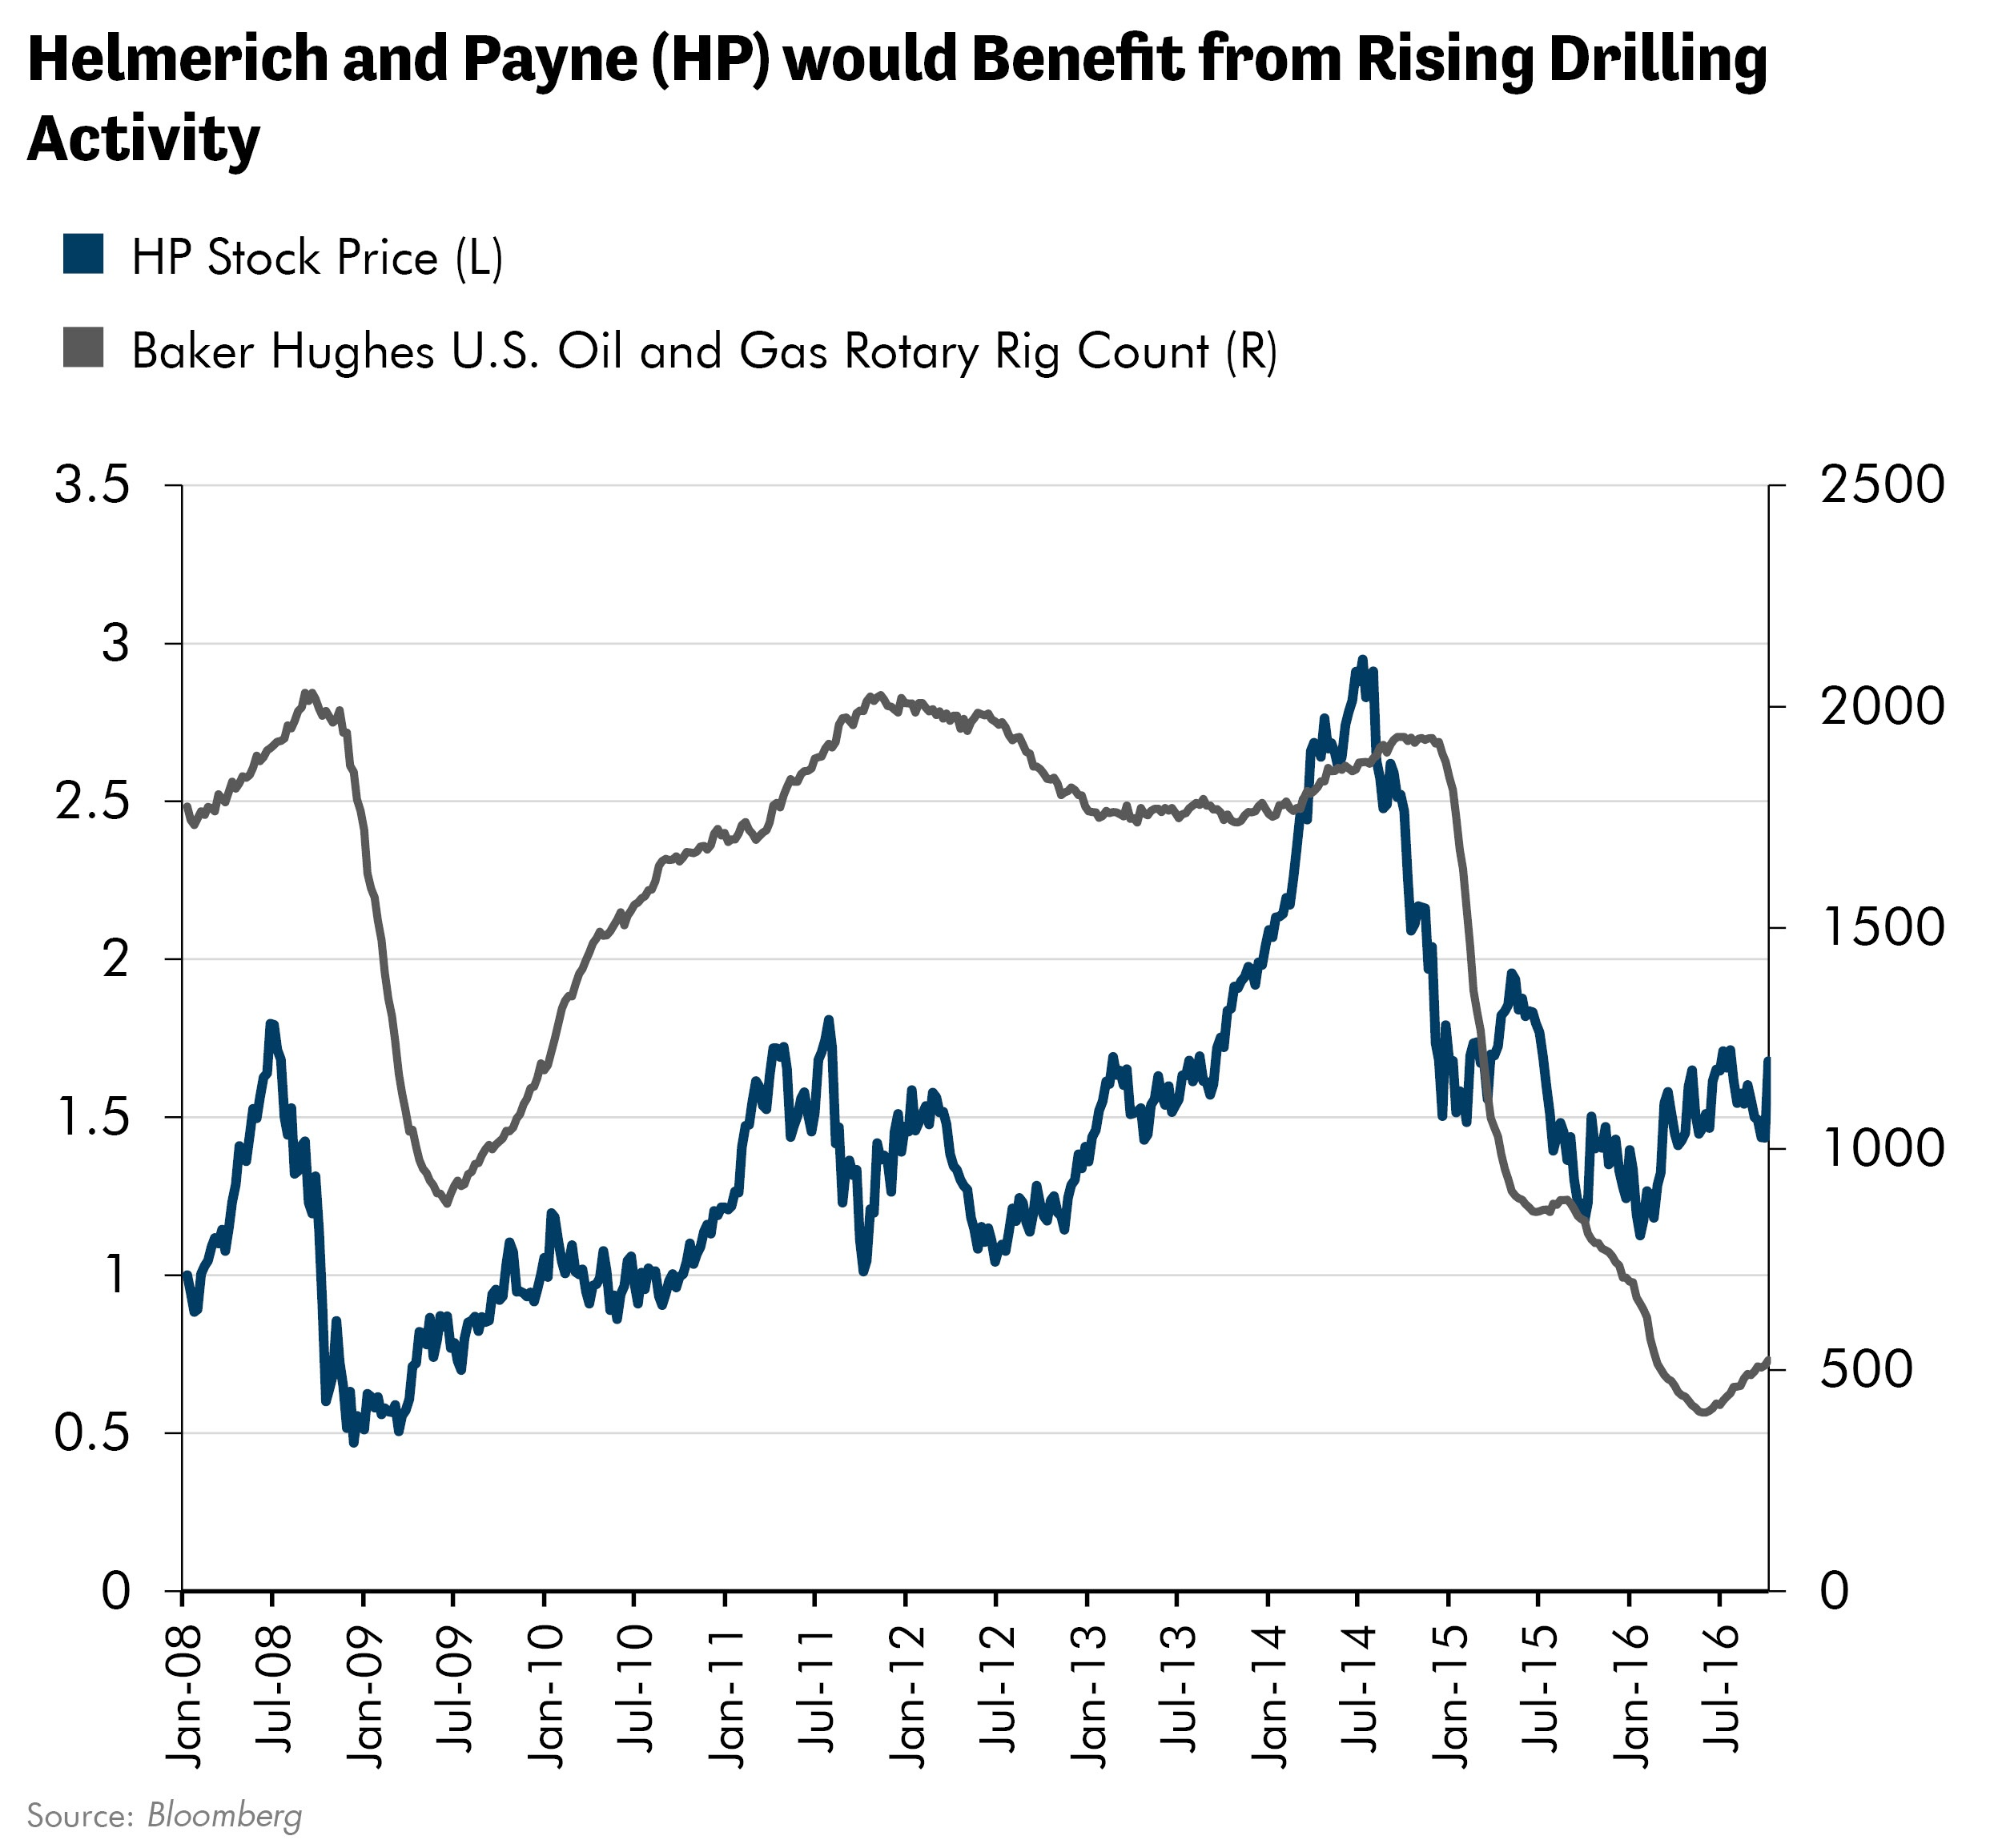 Helmerich and Payne (HP) would Benefit from Rising Drilling Activity